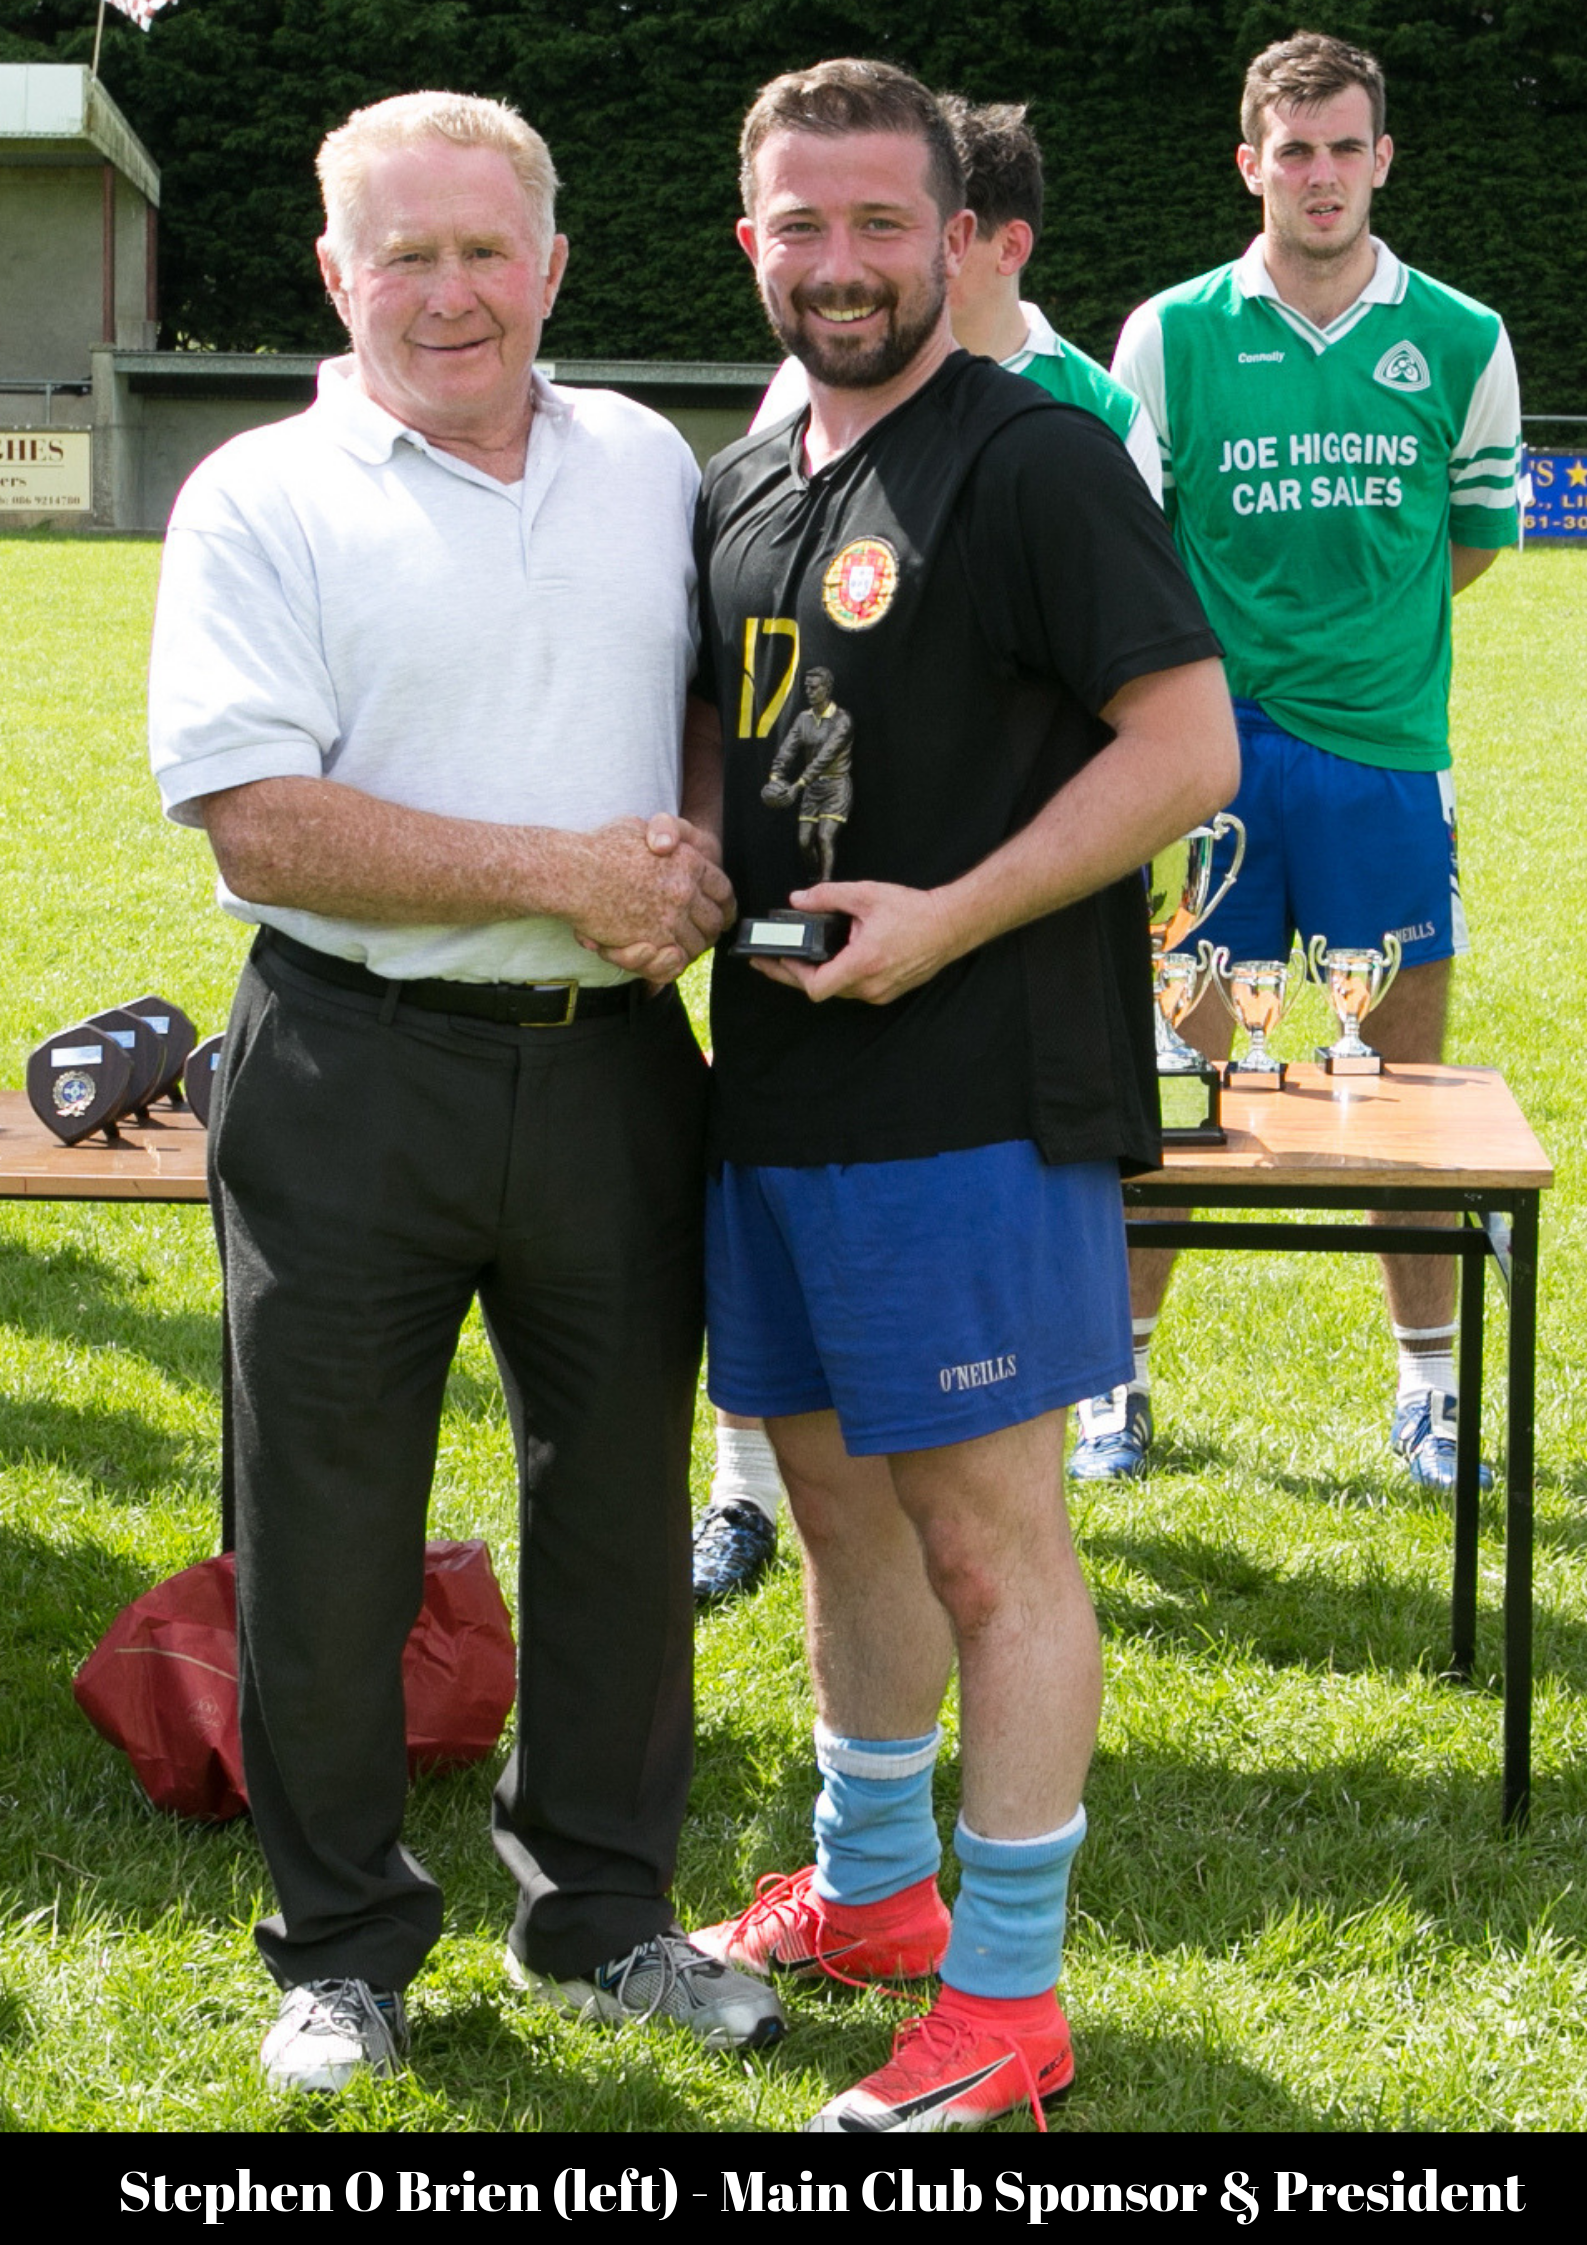 Stephen O Brien (left) - Main Club Sponsor & President